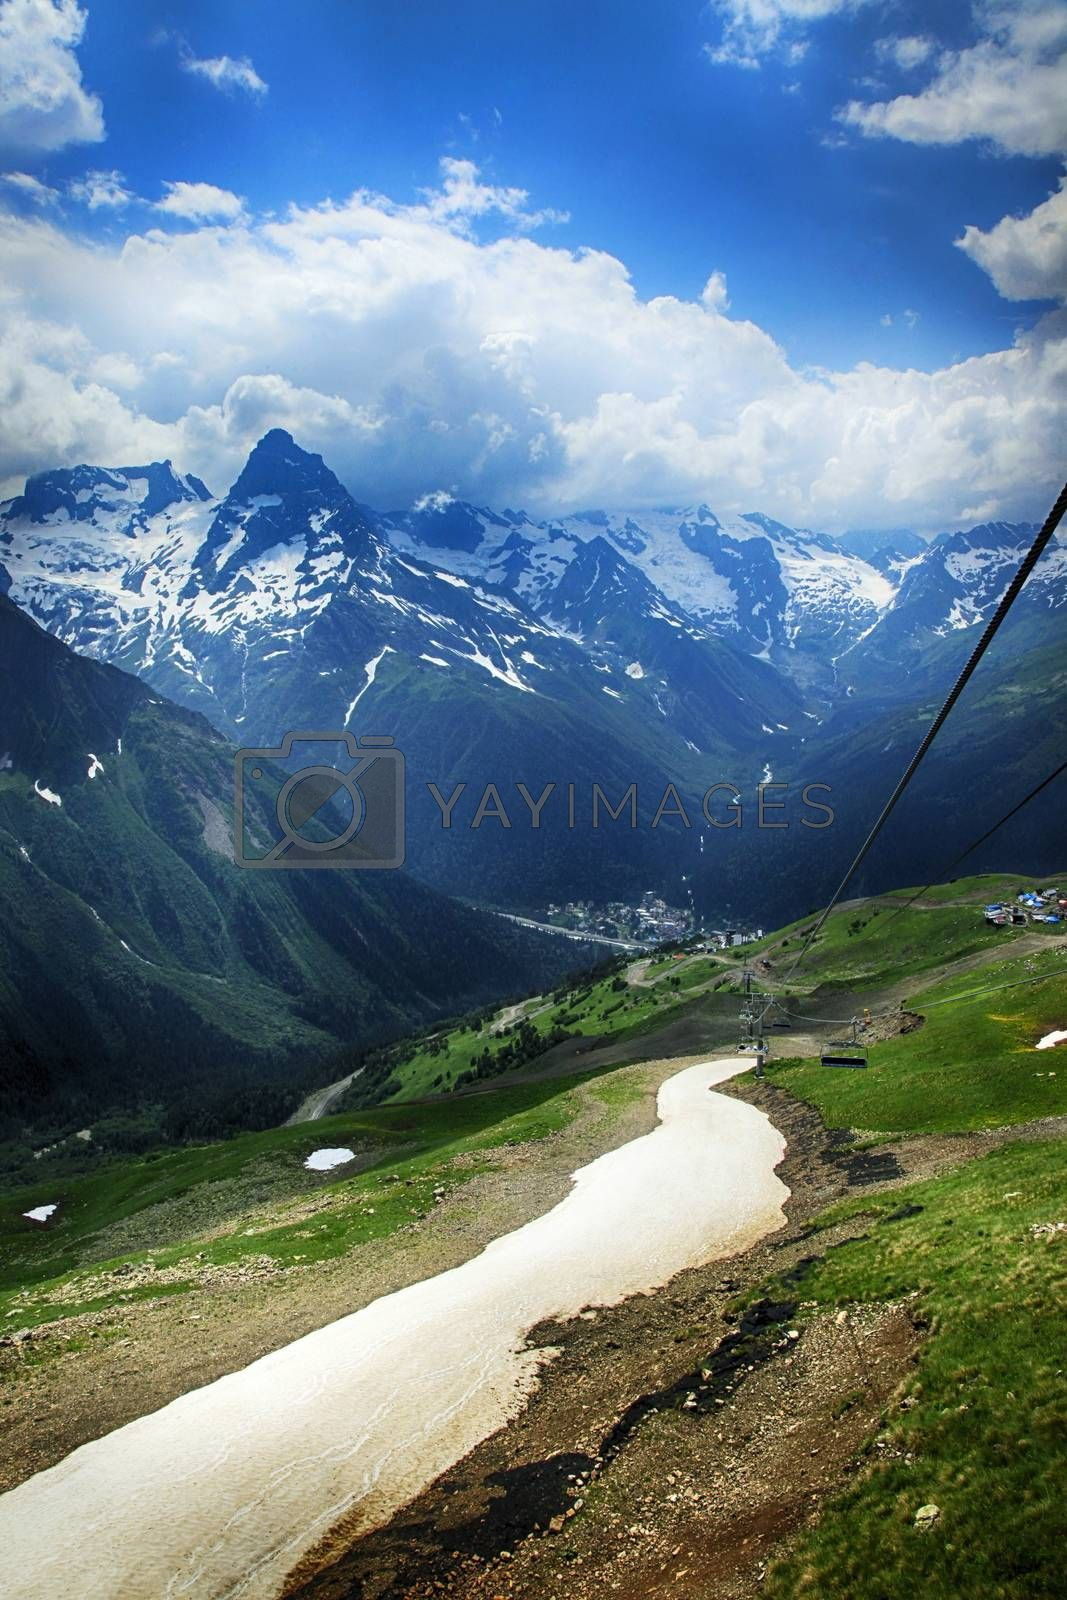 Royalty free image of Panorama of mountains scene with dramatic blue sky by friday